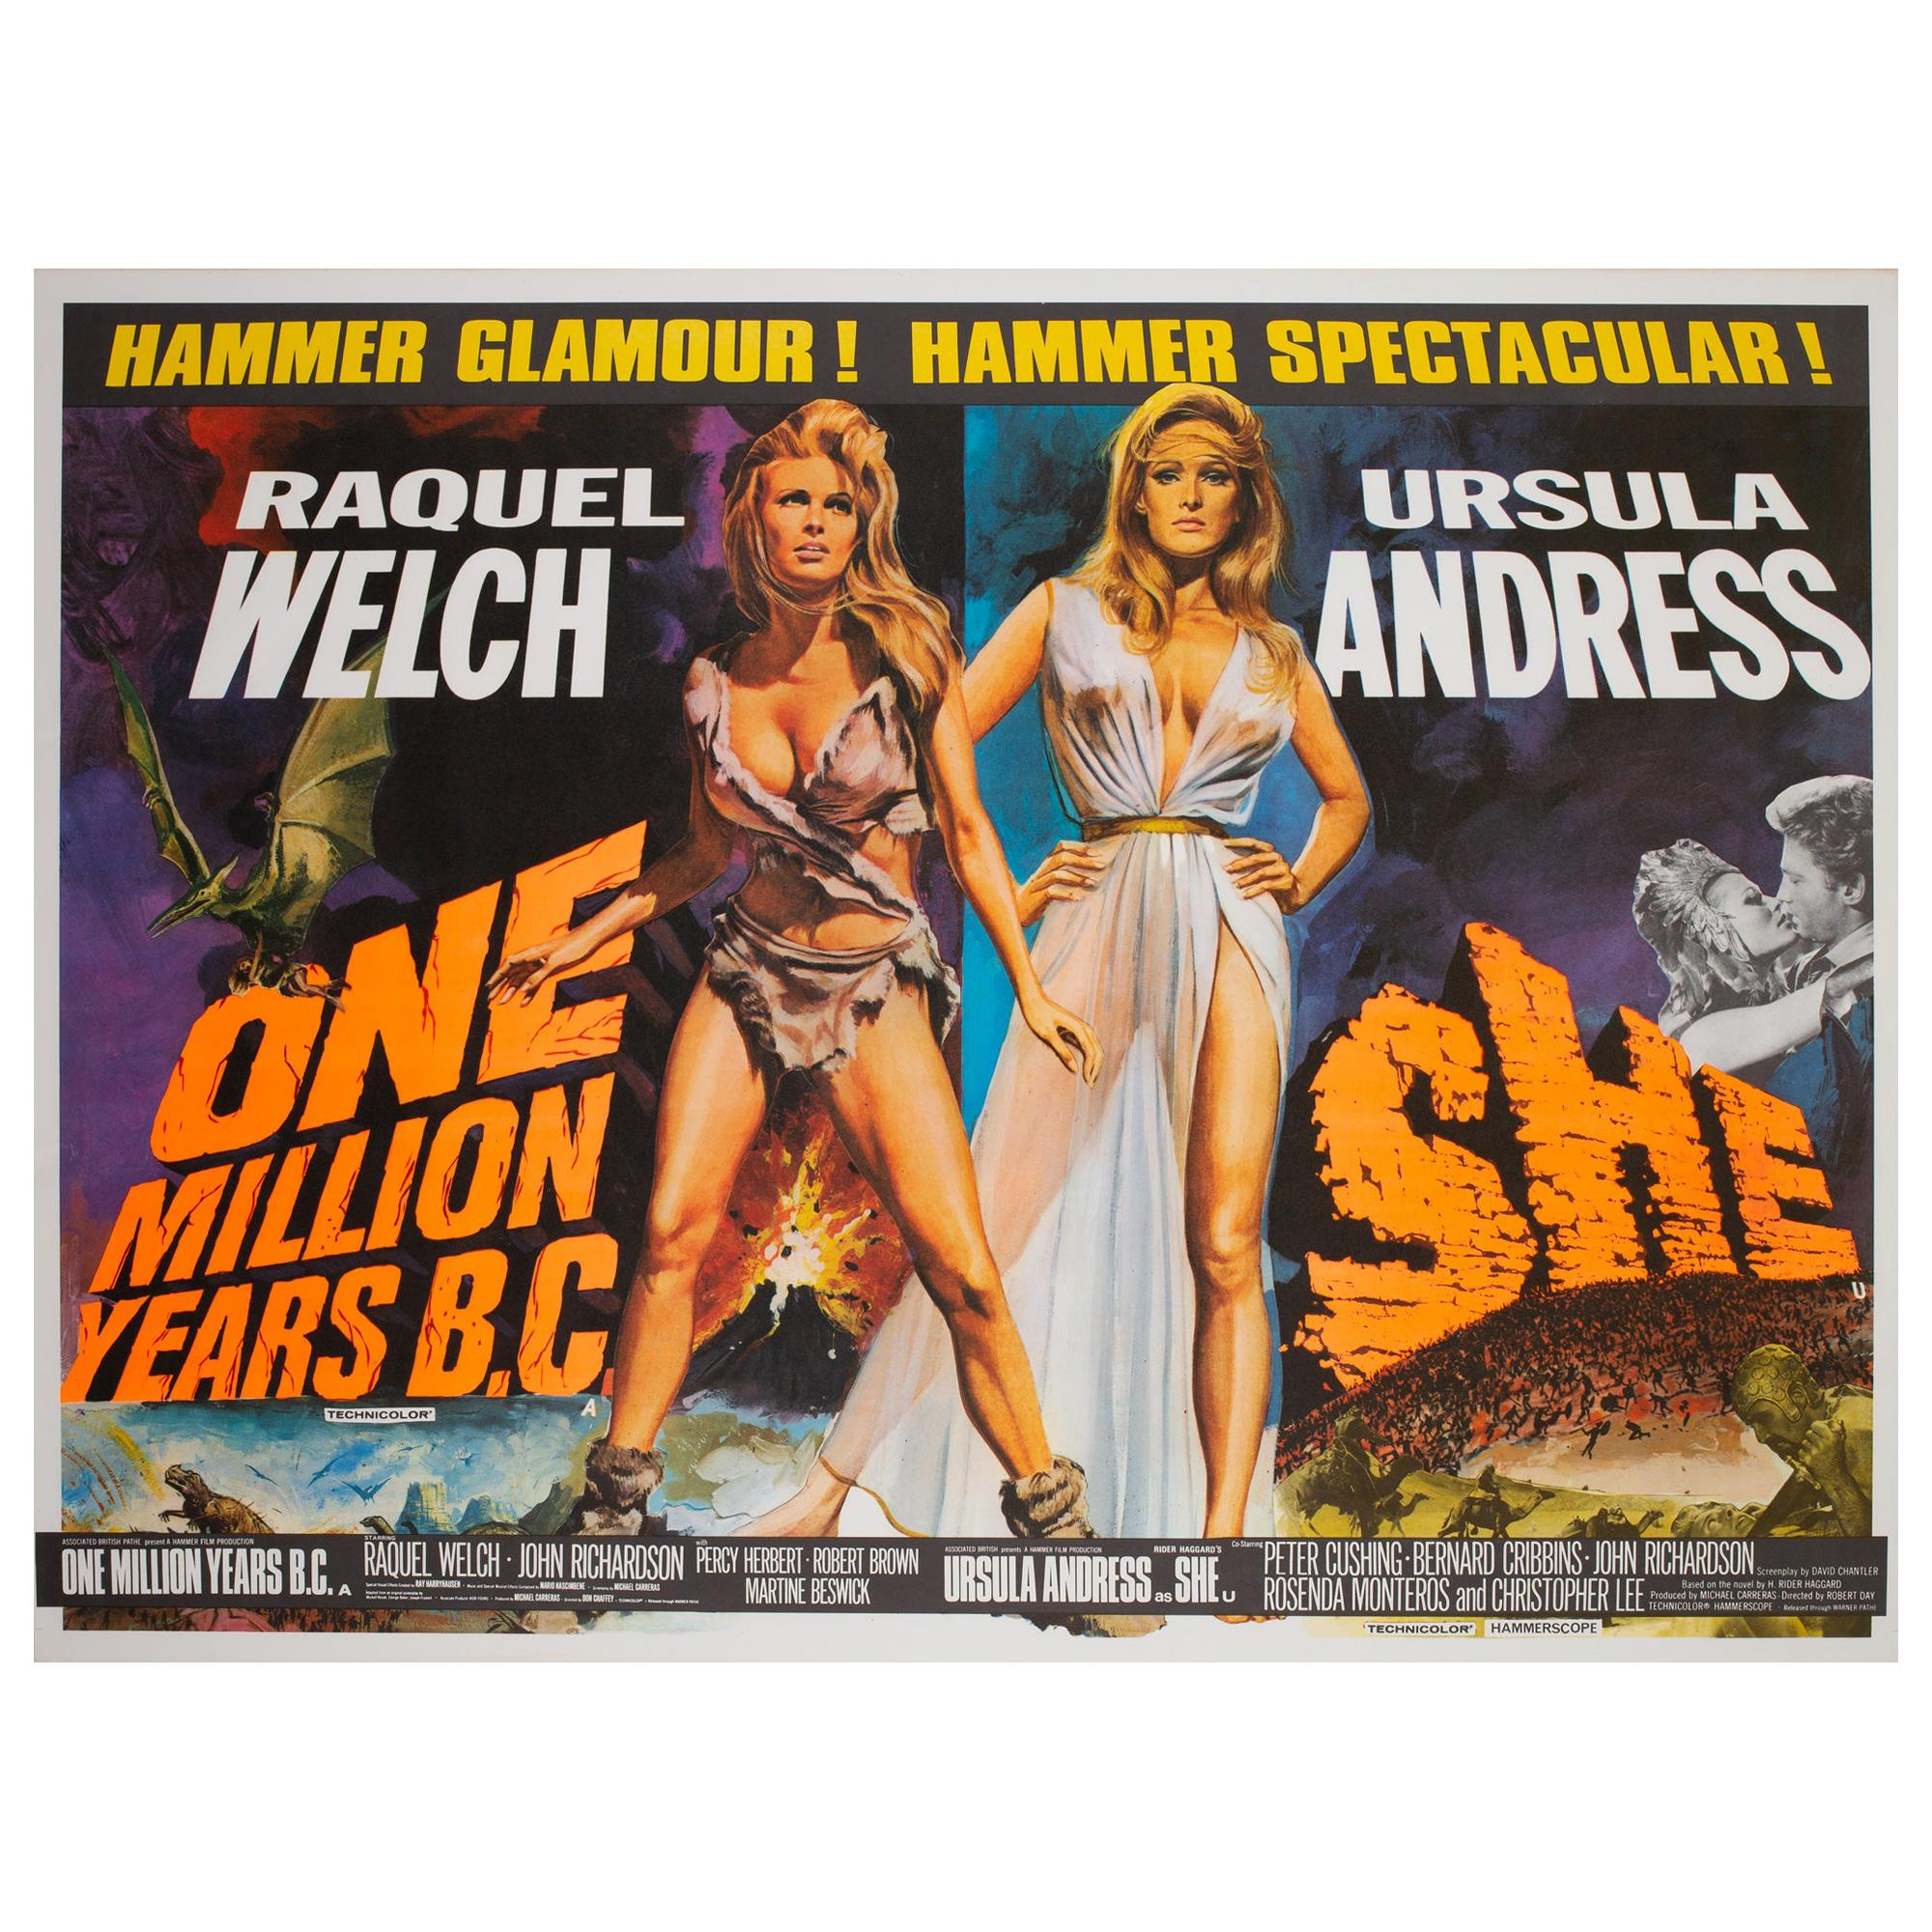 One Million Years B.C/She Double 1968 Bill UK Quad Film Movie Poster, Chantrell